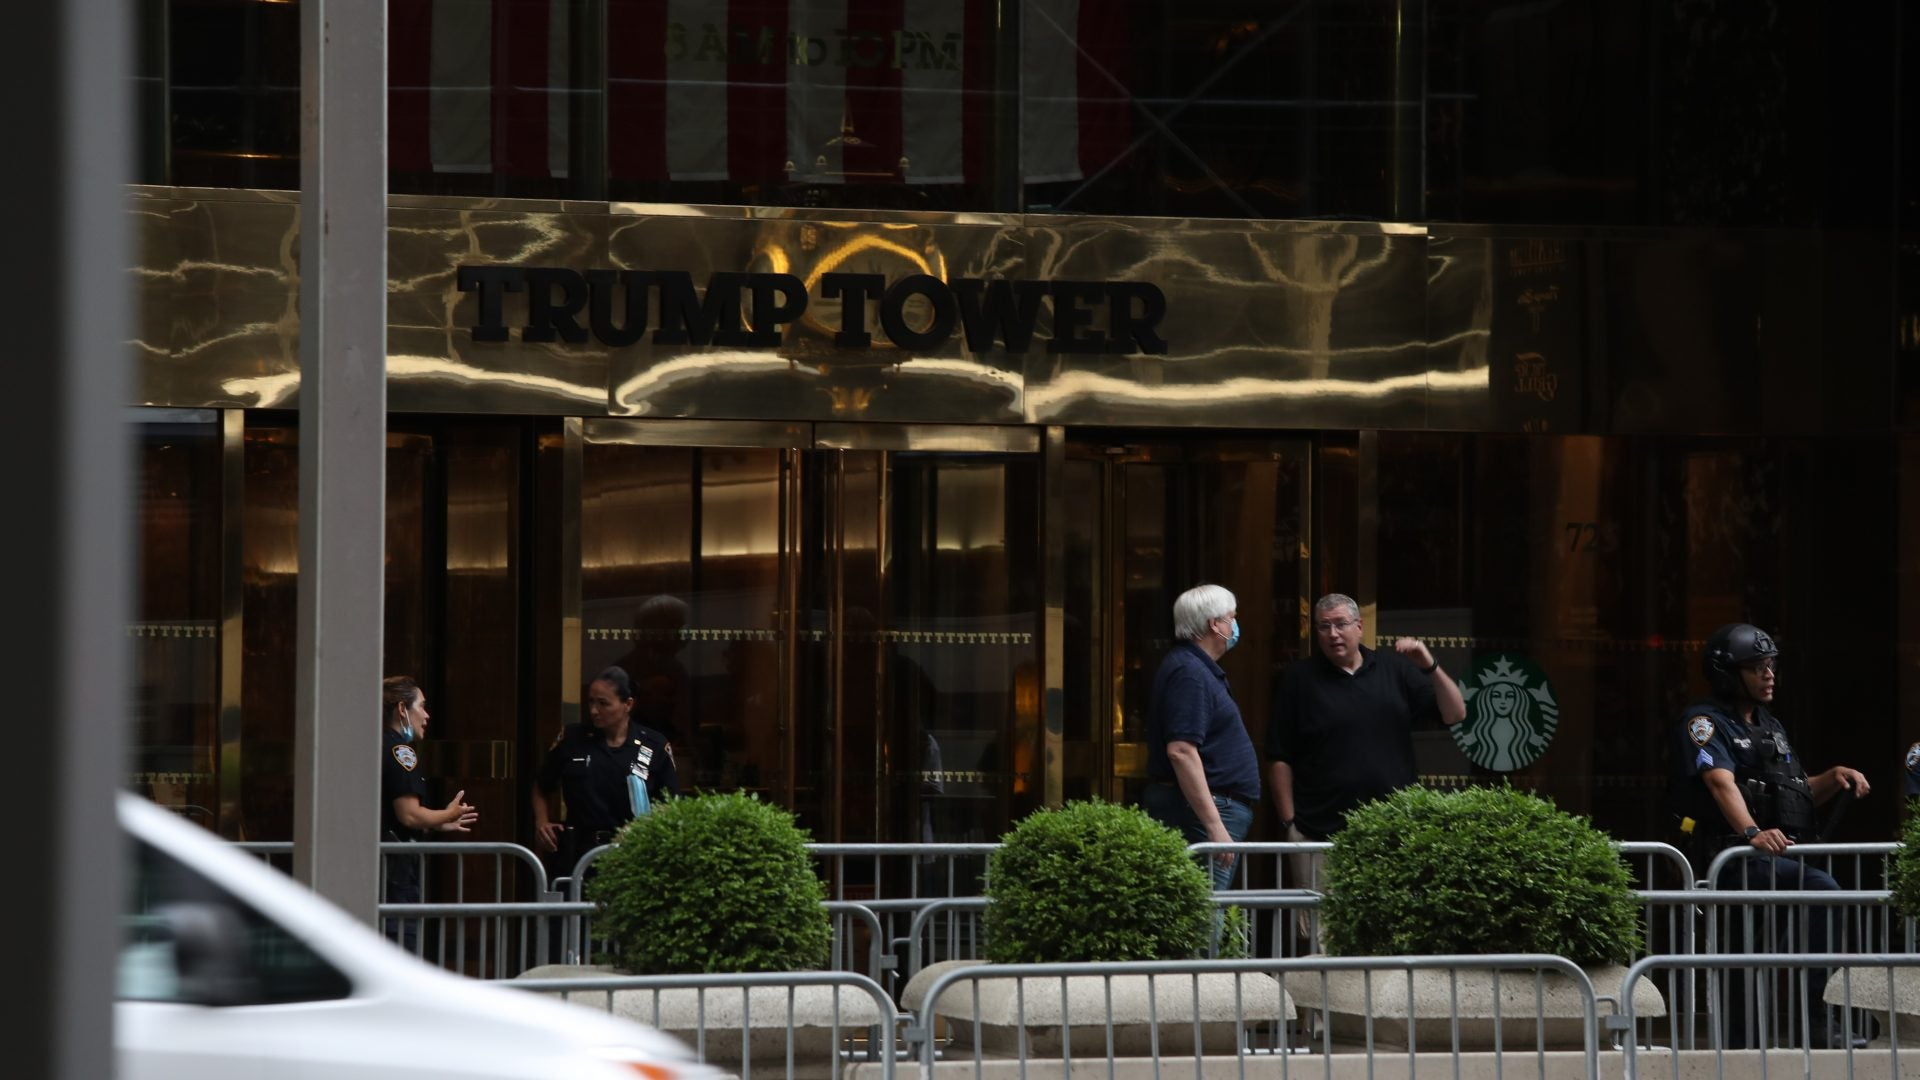 NYC Begins Painting Black Lives Matter Street Mural In Front Of Trump Tower